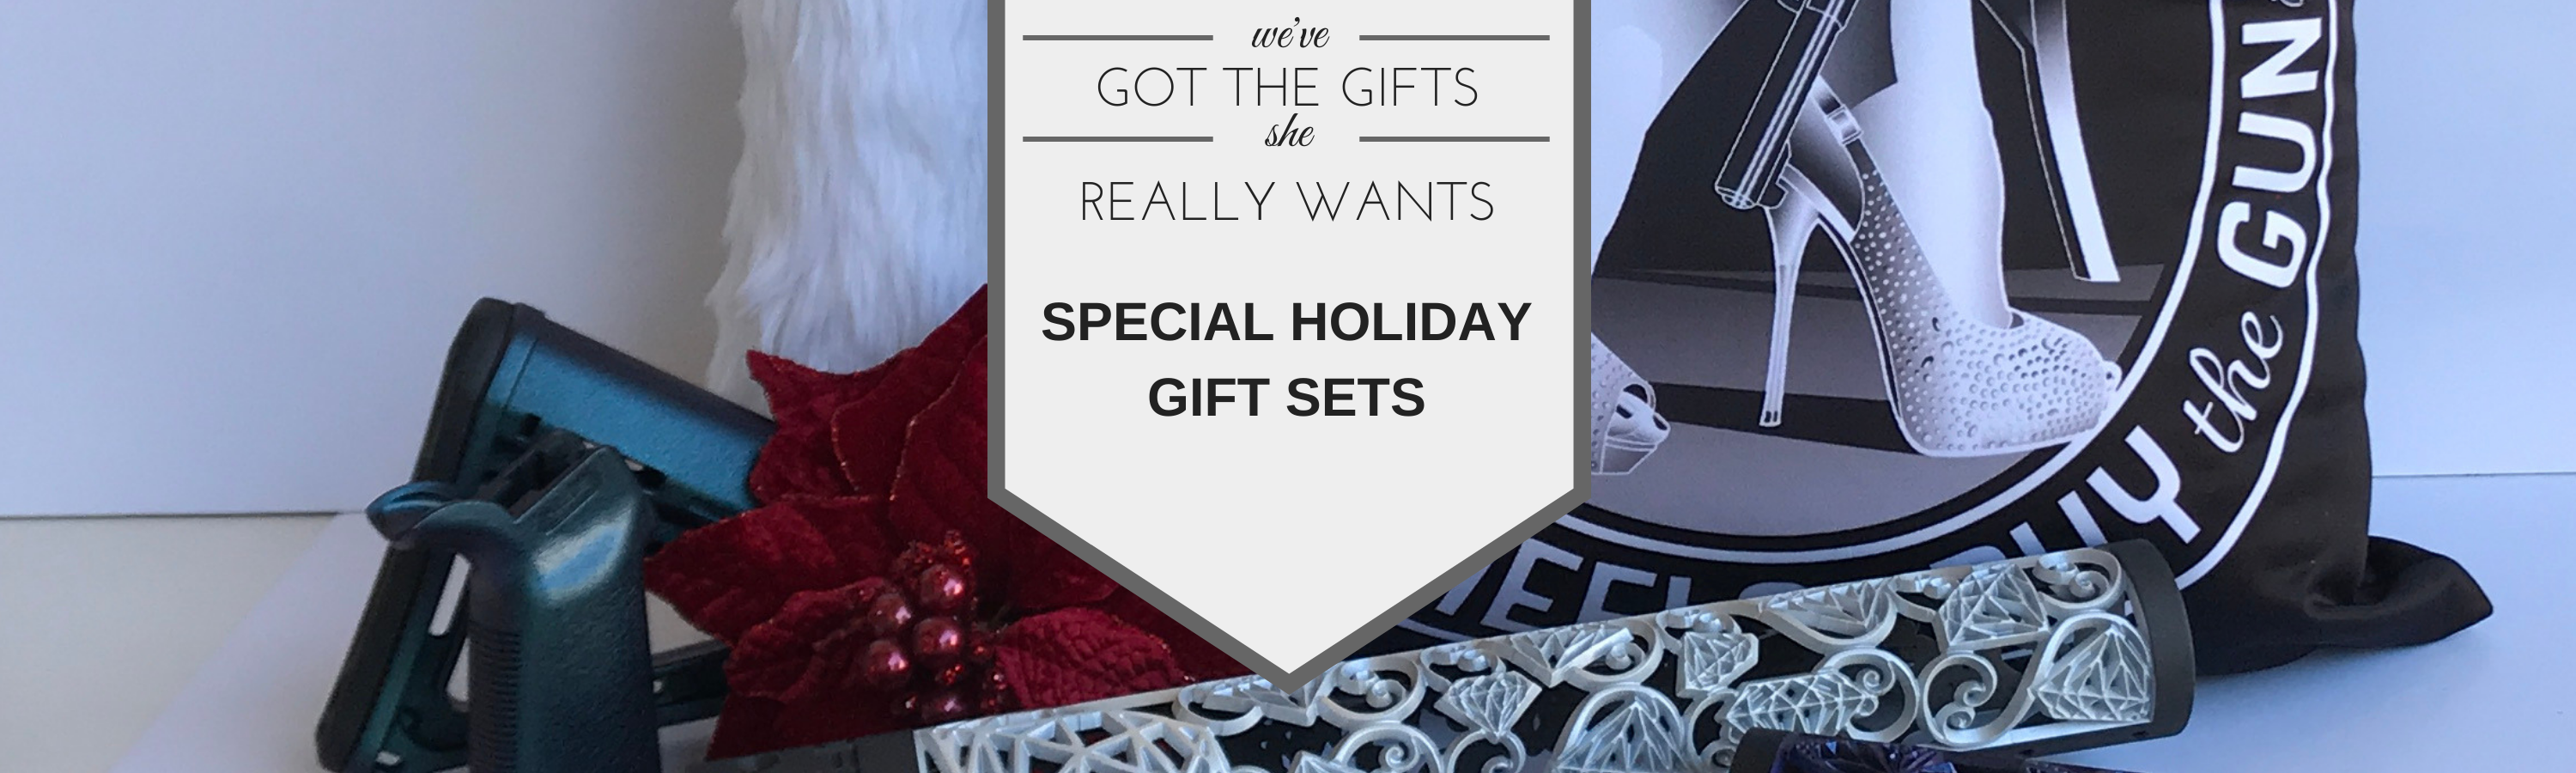 banner-gift-sets-no-button.png